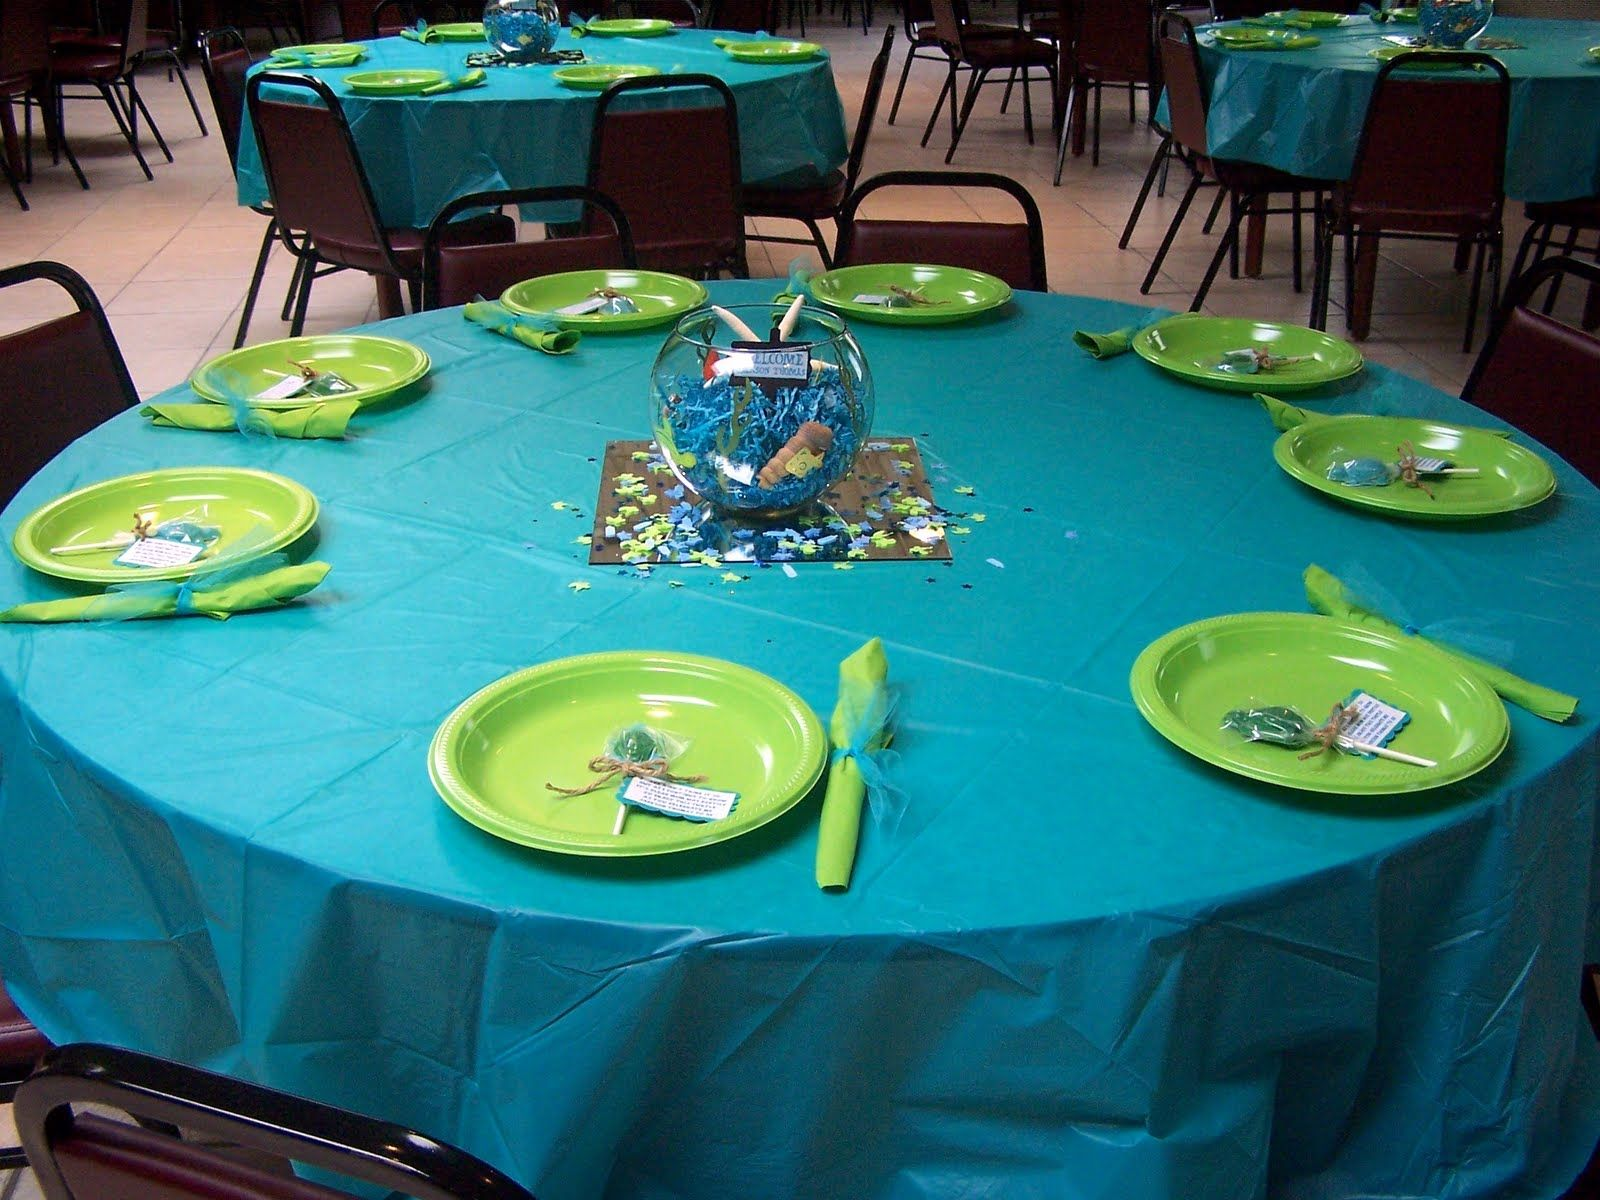 Baby shower table decoration ideas - Turtle Baby Shower Centerpieces Centerpiece For The Table These Glass Bowls Were Used For